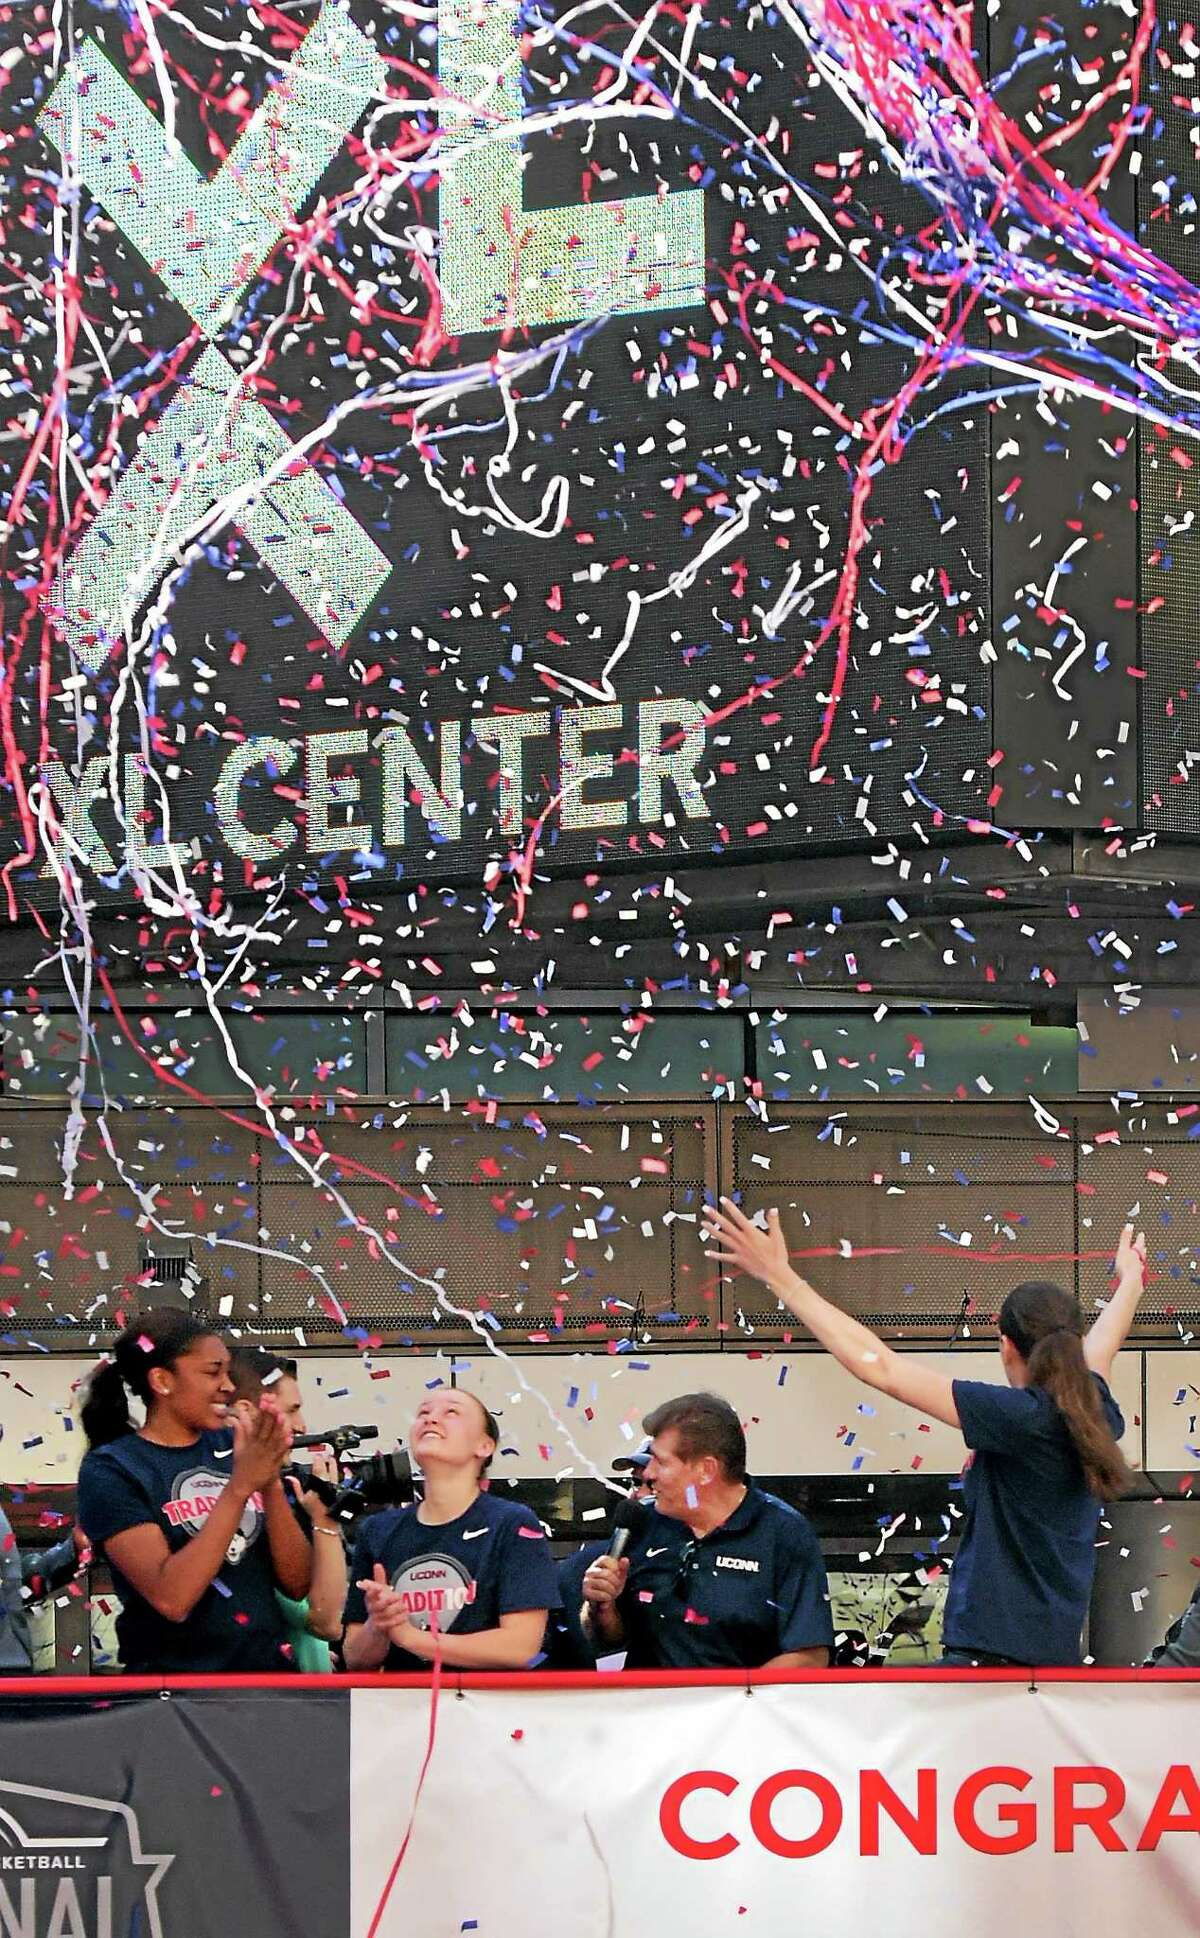 (Peter Hvizdak - New Haven Register) Confetti falls on the 2015 NCAA National Champion University of Connecticut Women's Basketball team as it is honored during a rally after a victory parade sponsored by the State of Connecticut, the City of Hartford, and the Hartford Business Improvement District Sunday afternoon congratulating them for their efforts.